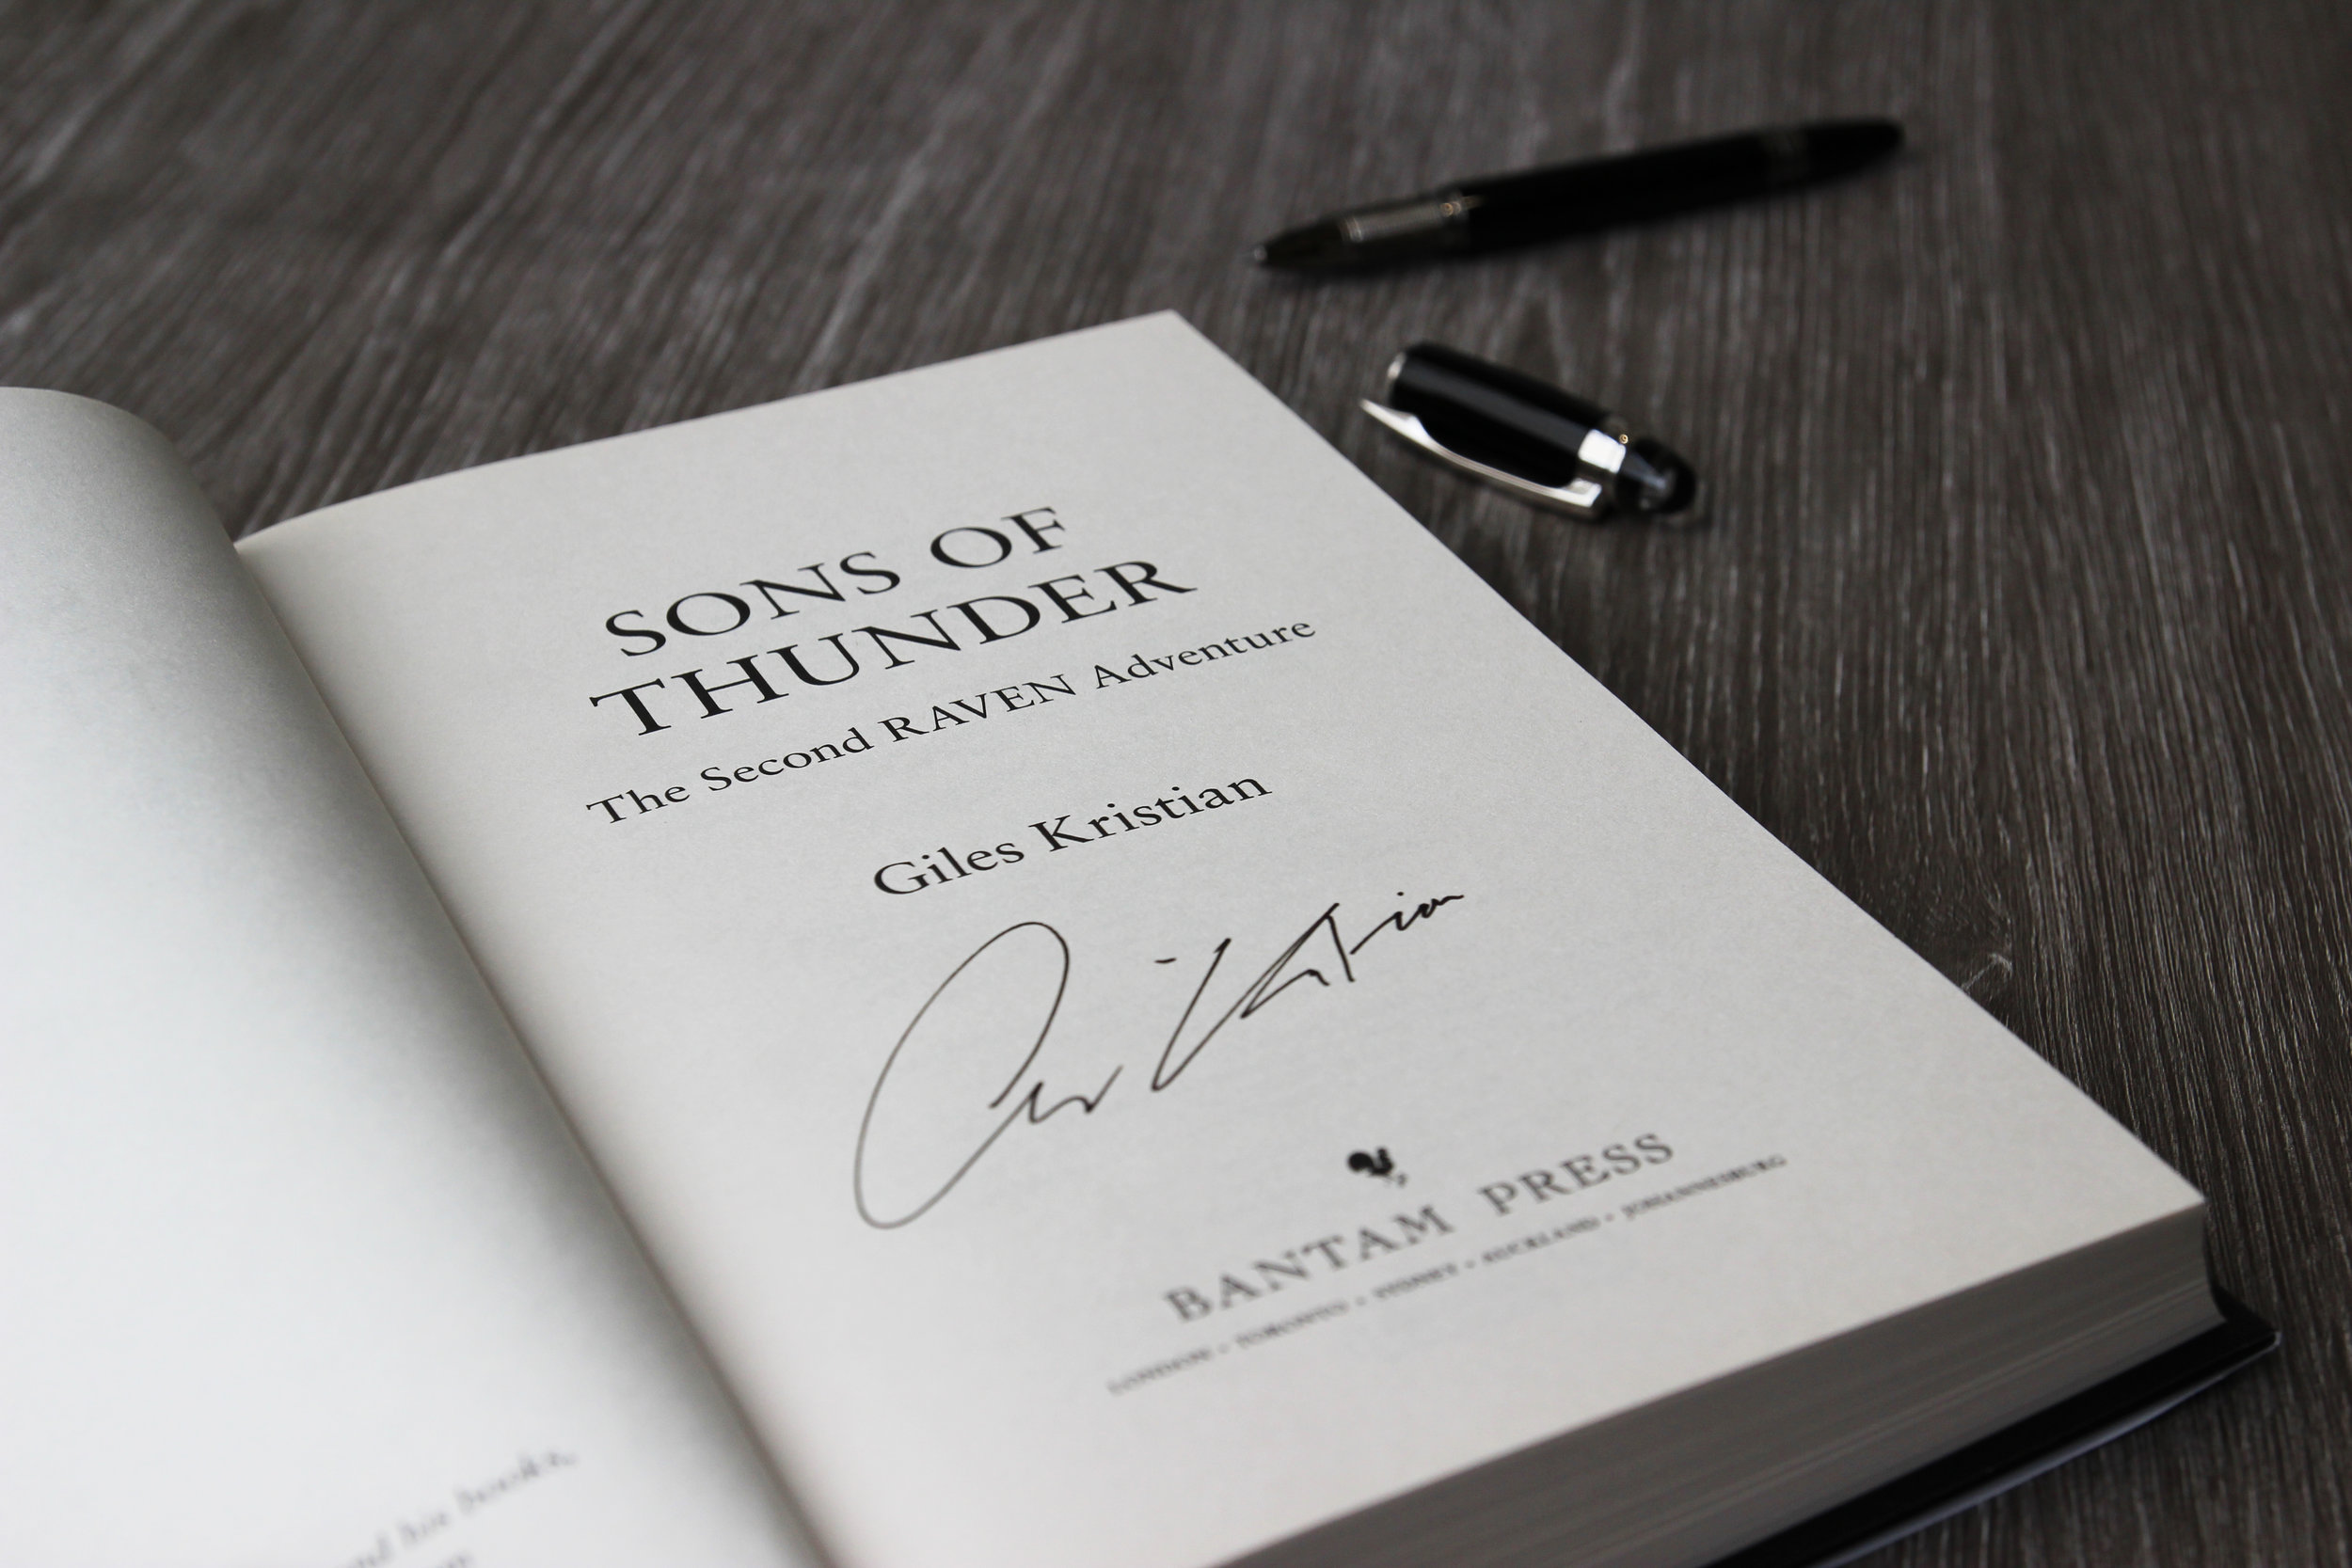 Signed copy of Sons of Thunder by Giles Kristian